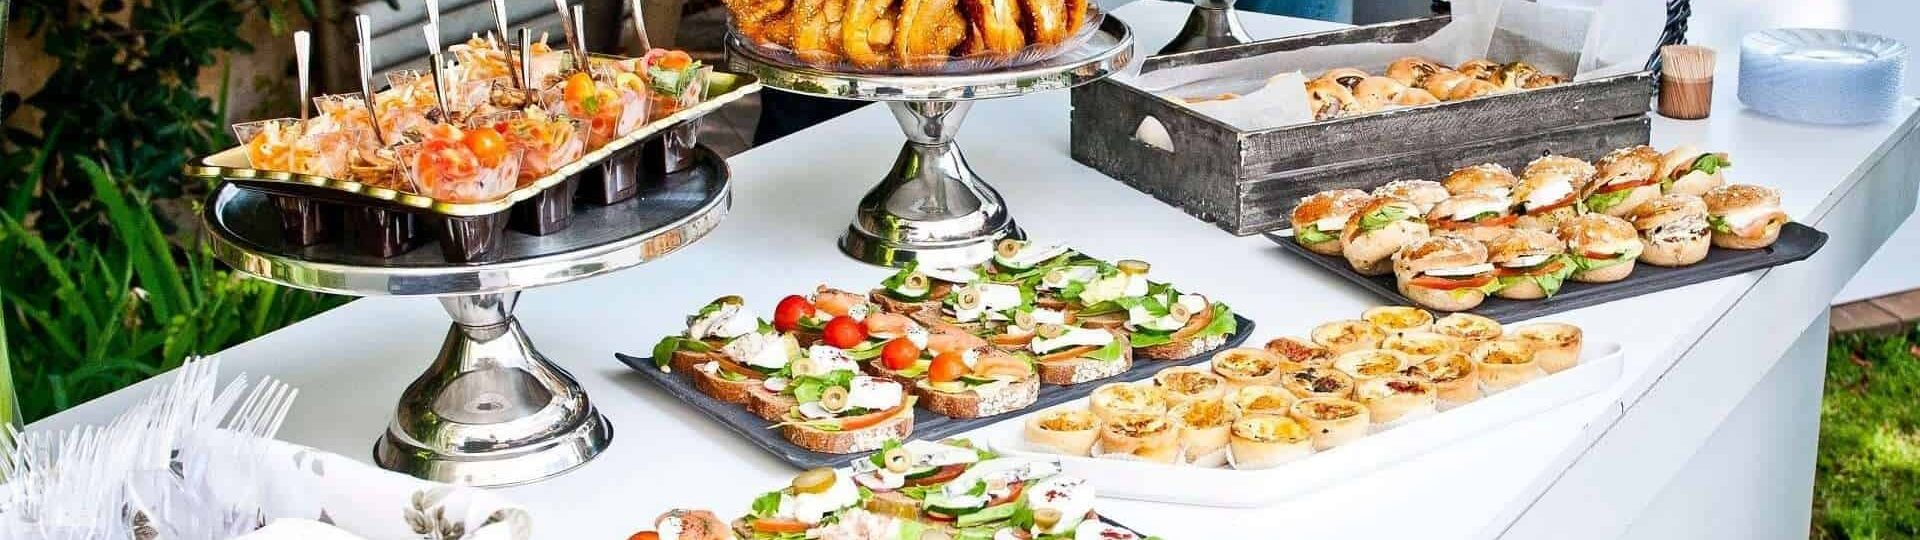 finger-food-buffet-1920x721